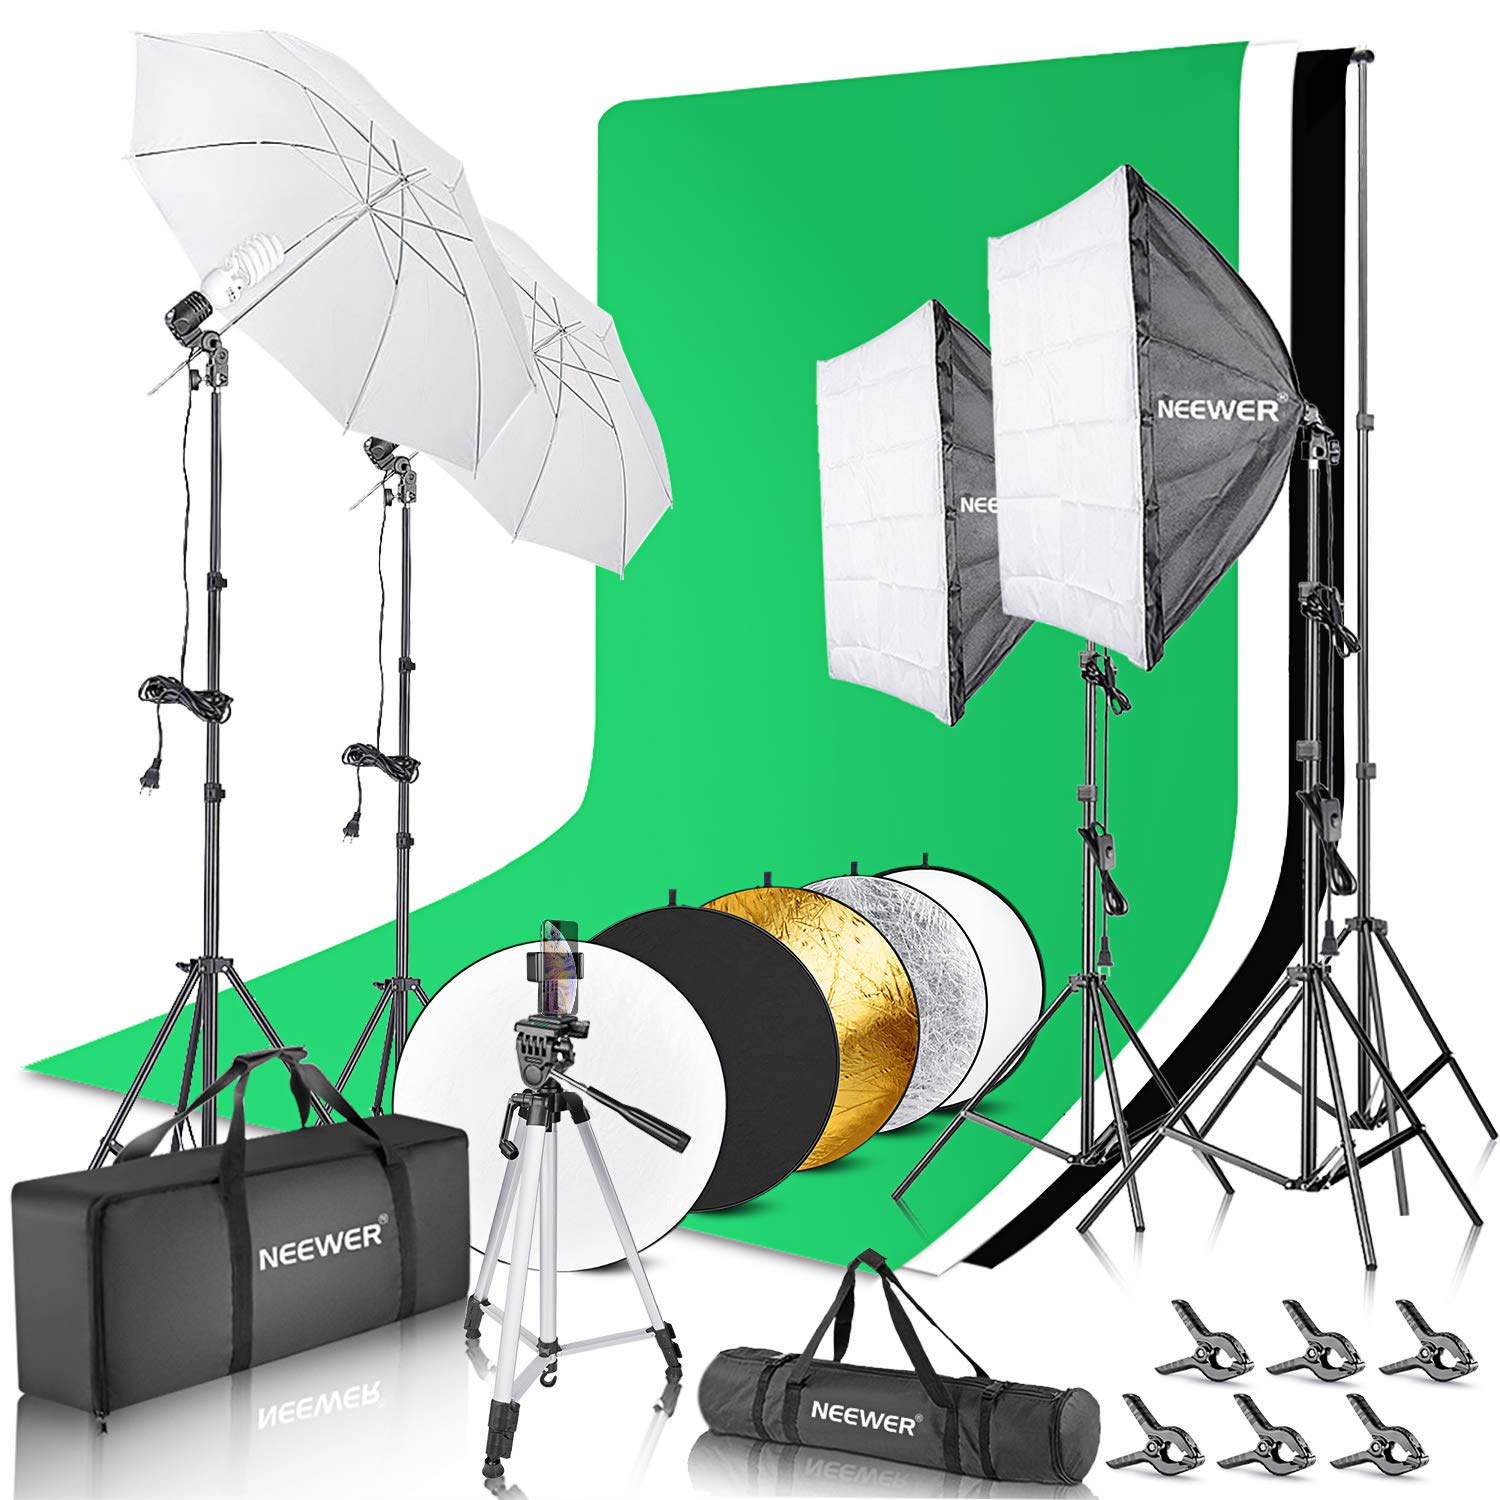 Neewer Complete Photography Lighting Kit: 8.5x10feet Background Support System/800W 5500K Umbrellas Softbox Continuous Lighting Kit/5-in-1 Reflector Disc/Tripod/Phone Holder/Carry Bag for Studio by Neewer